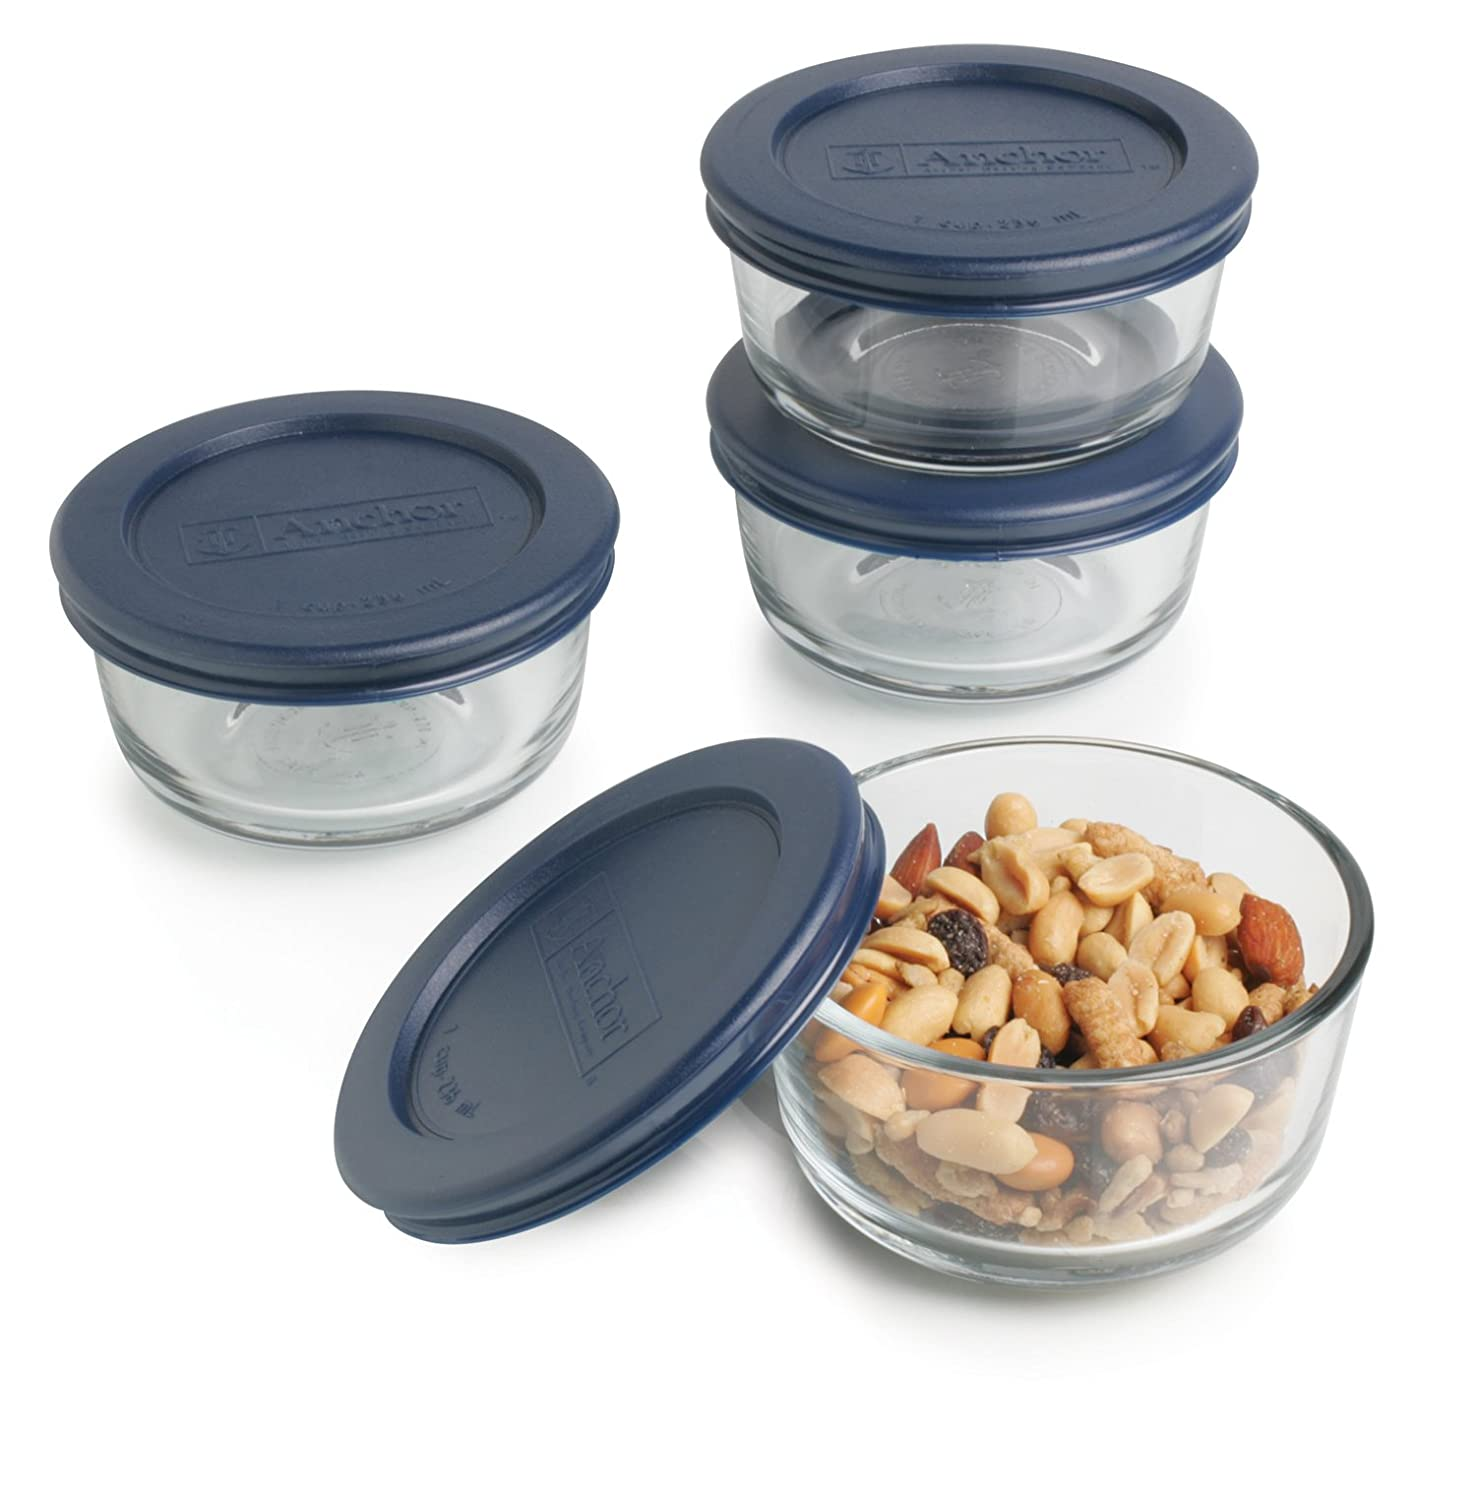 Anchor Hocking Glass Food Containers ONLY $6.96 (Reg. $20)